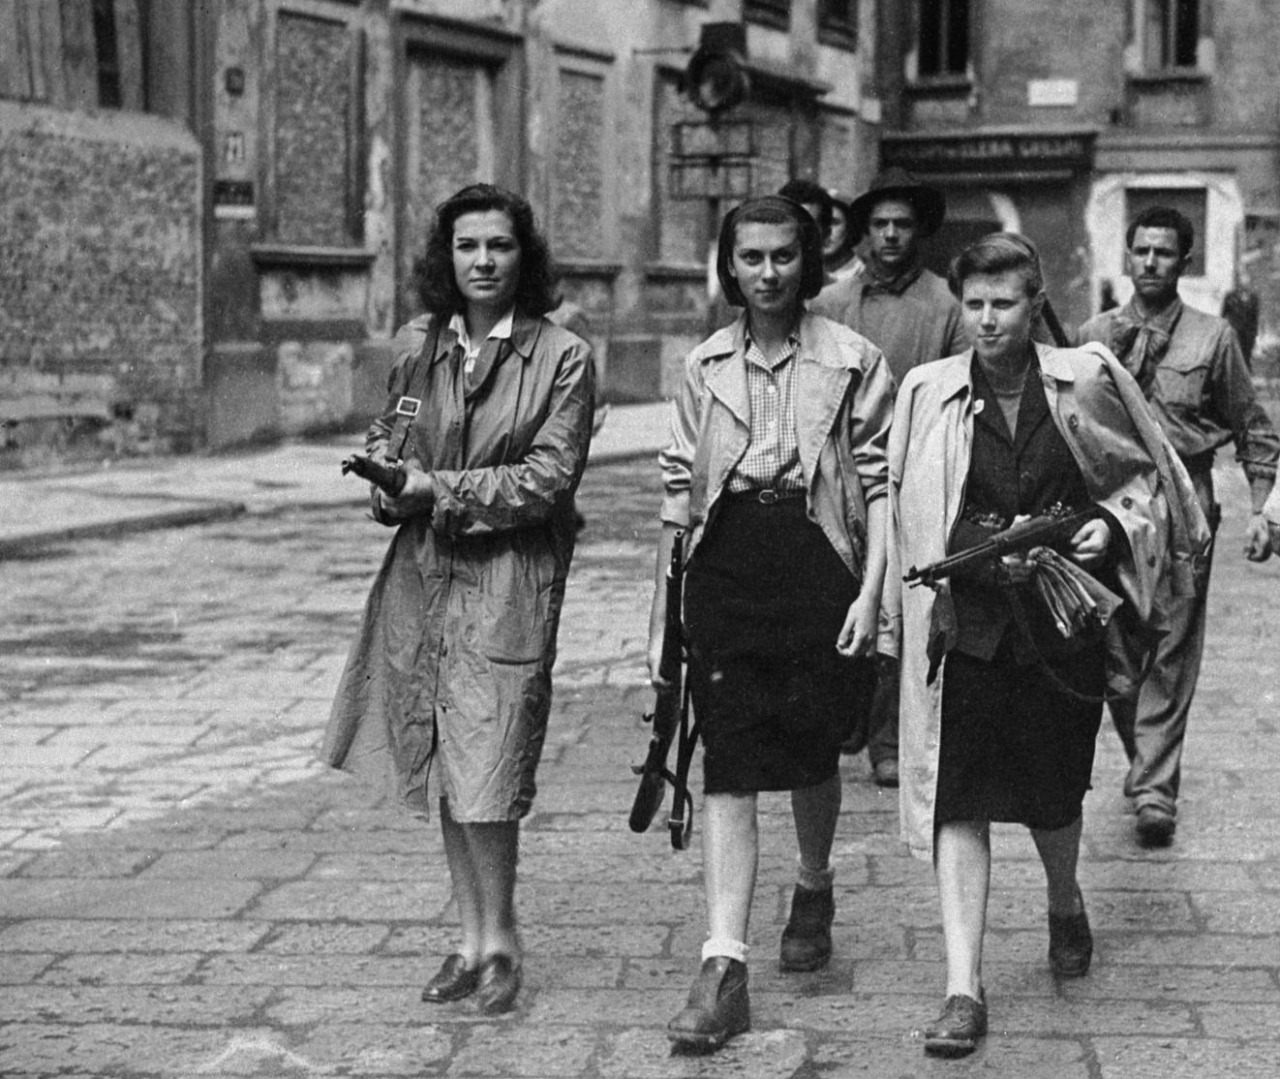 WWII — Women of the Italian resistance (Milan, Italy - April 1945)